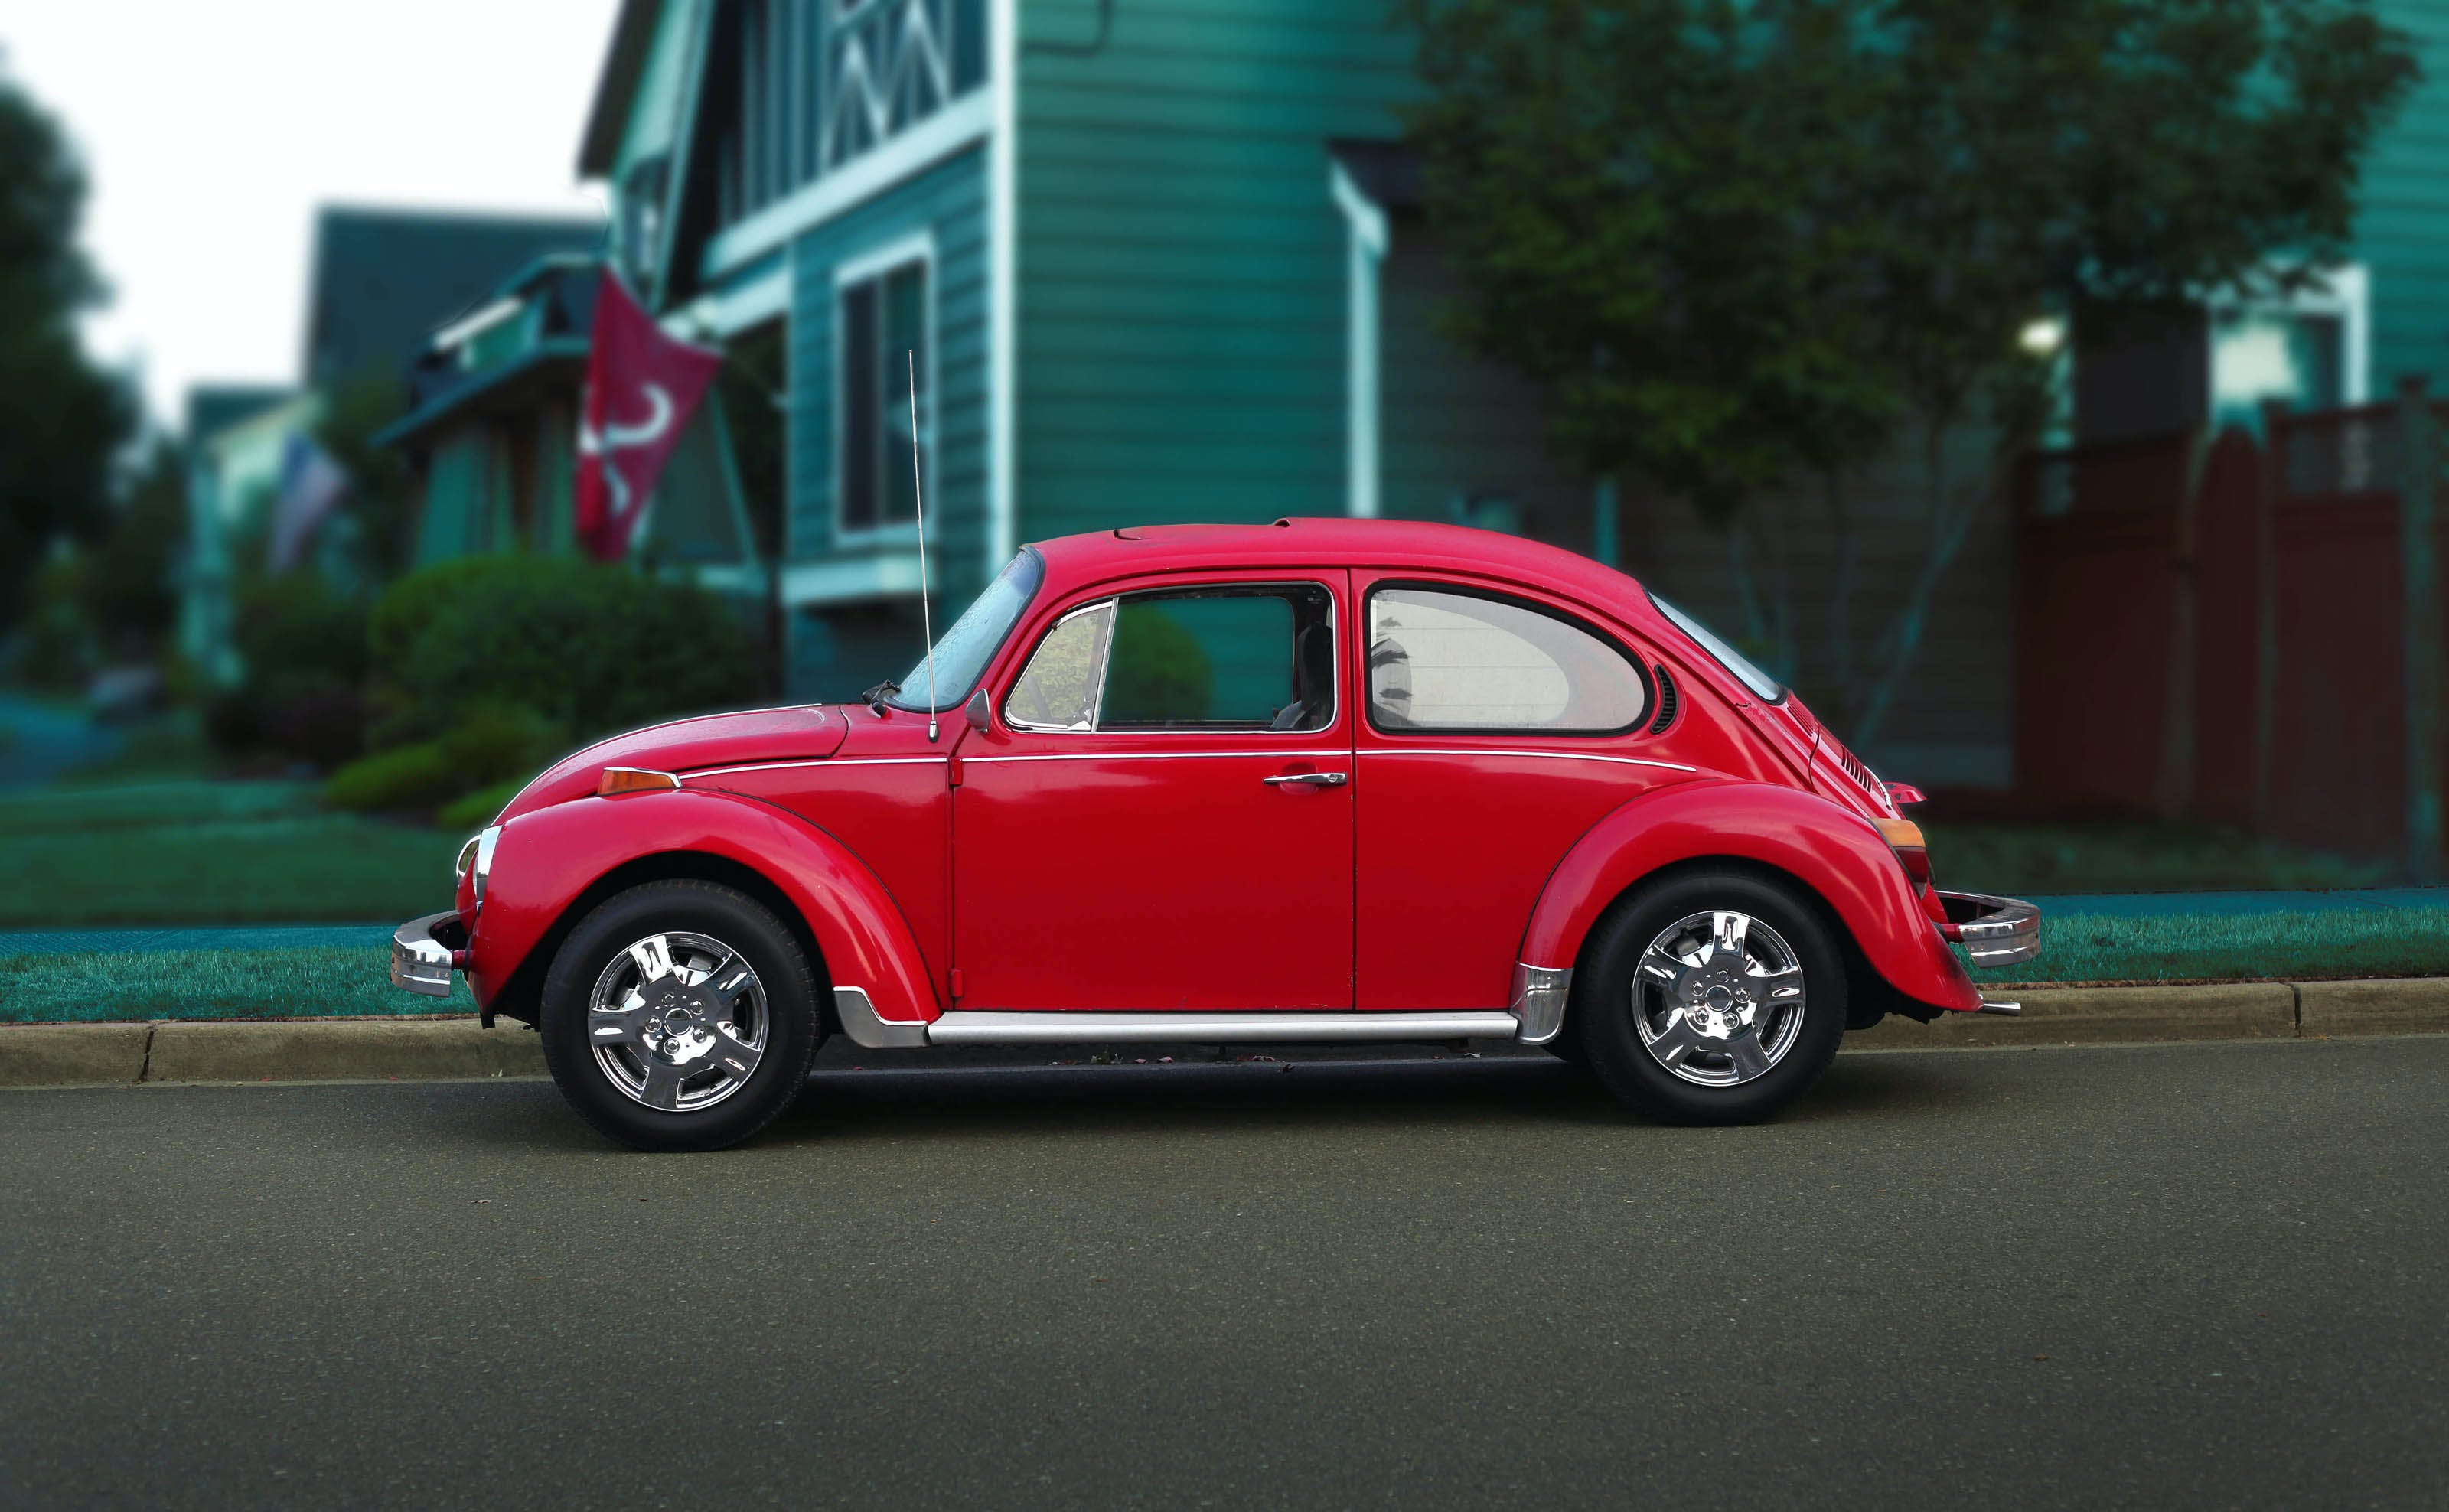 Red Volkswagen Beetle On Road